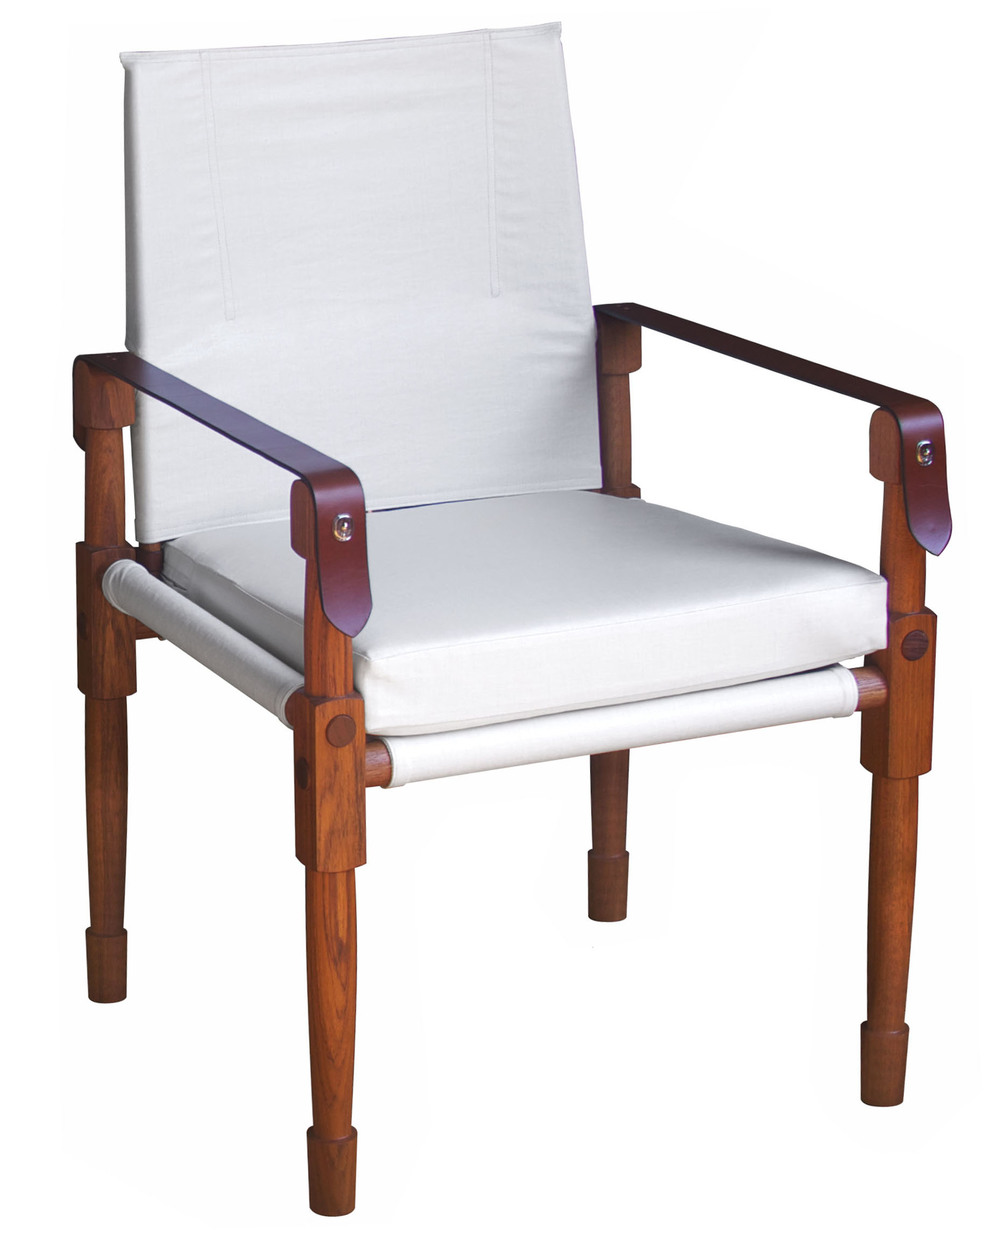 Chatwin Dining/Desk Chair - Large  Oiled teak, C&C Milano coated linen (COM) and saddle English bridle leather straps